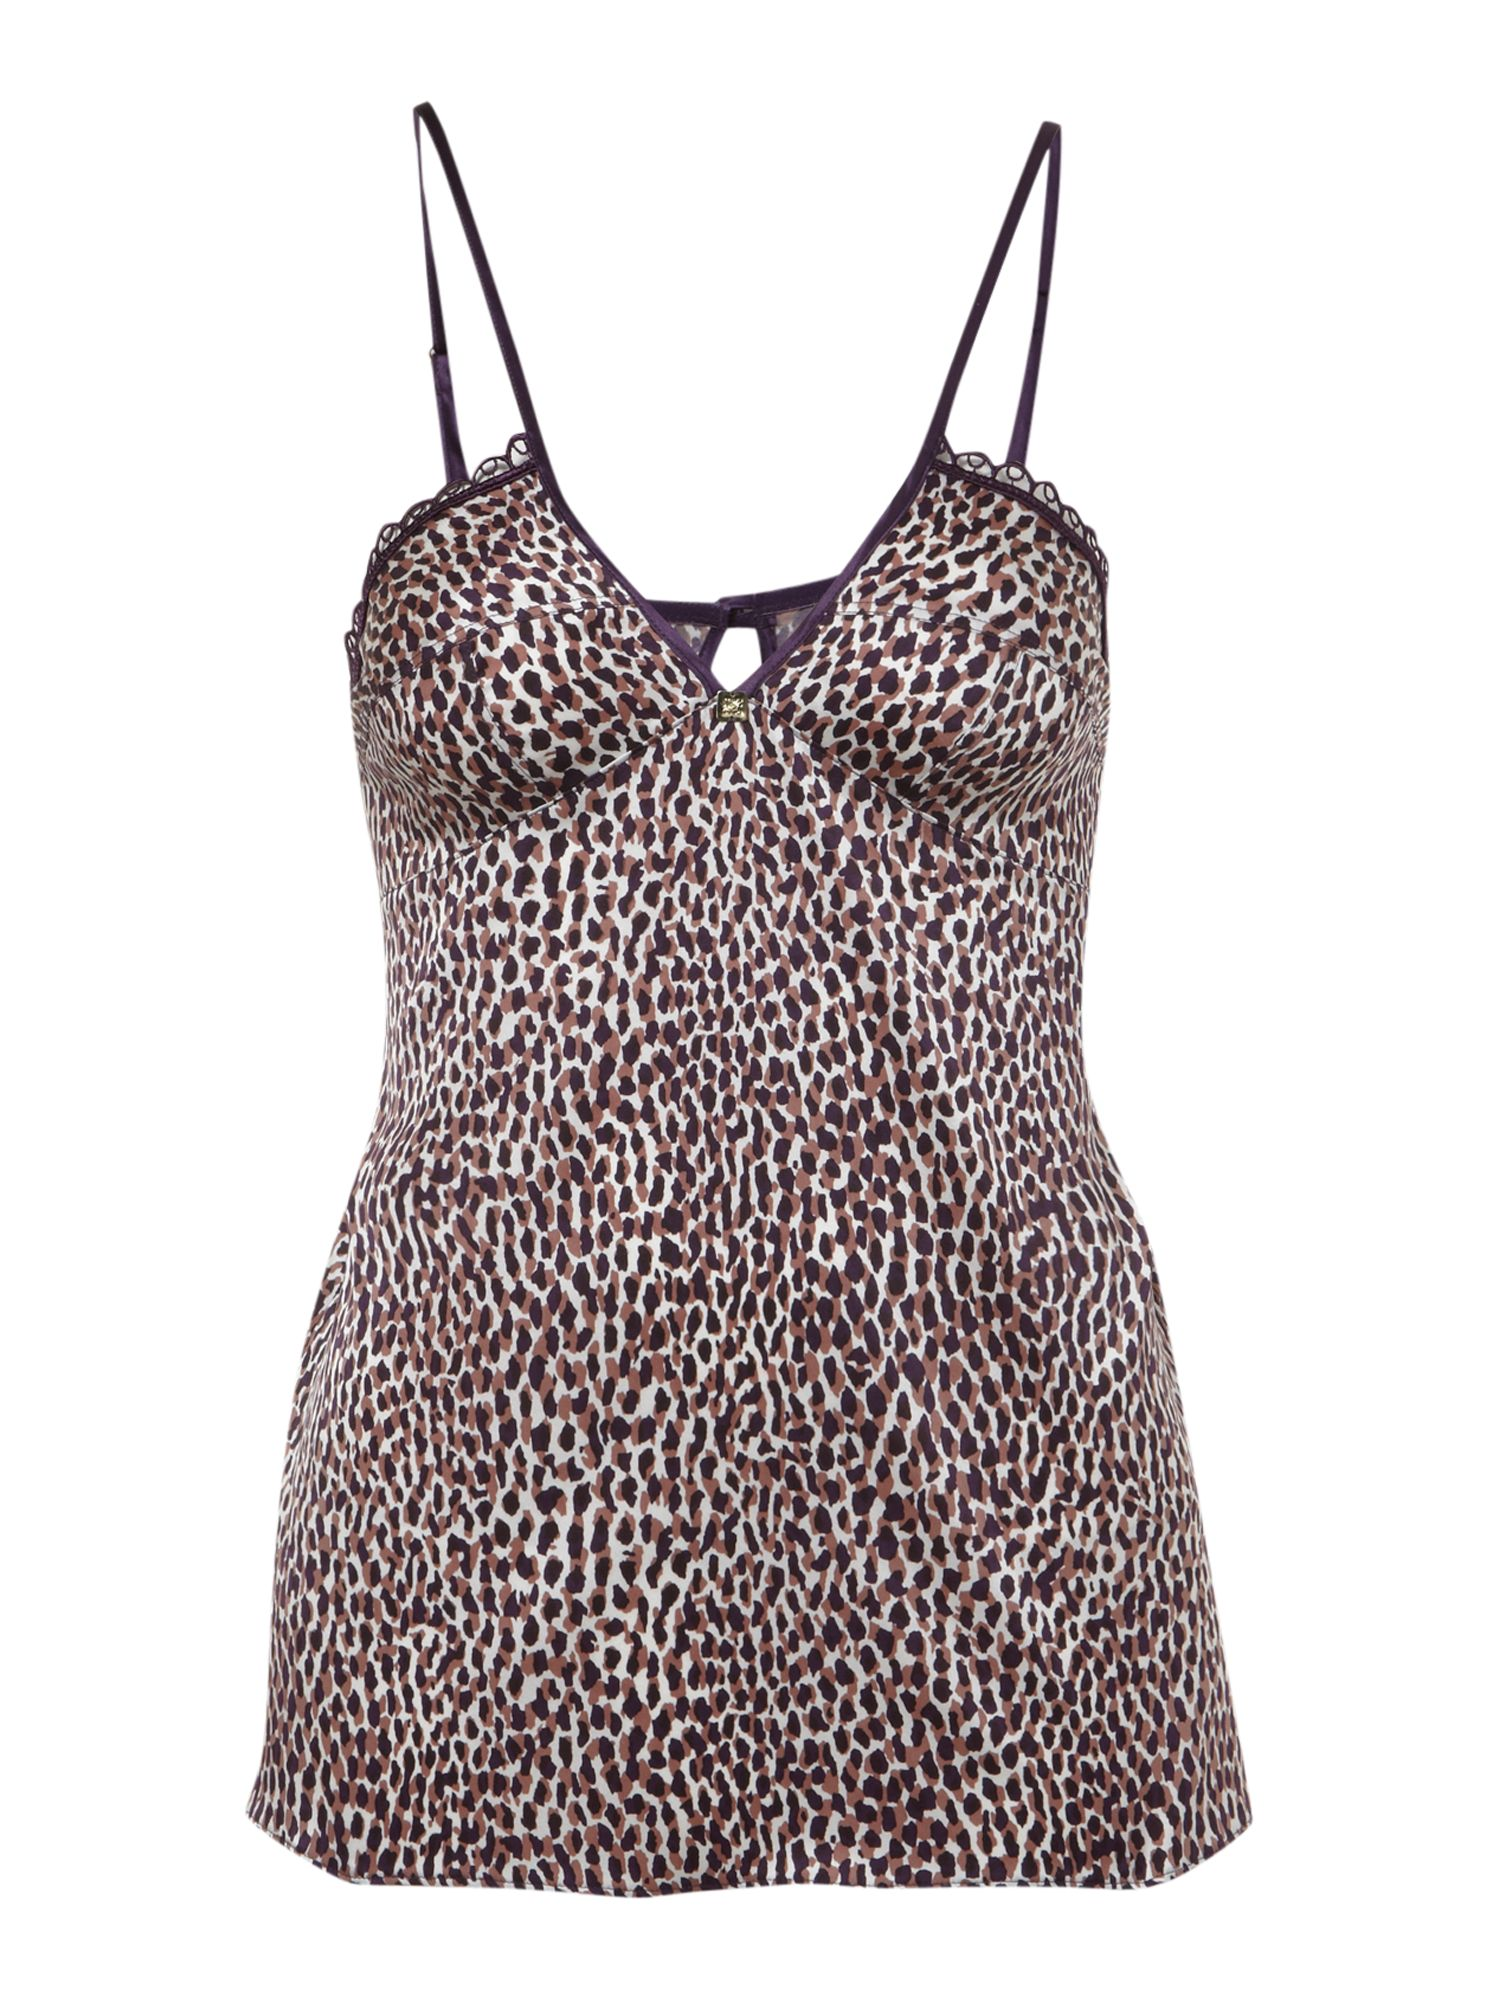 Out of africa camisole